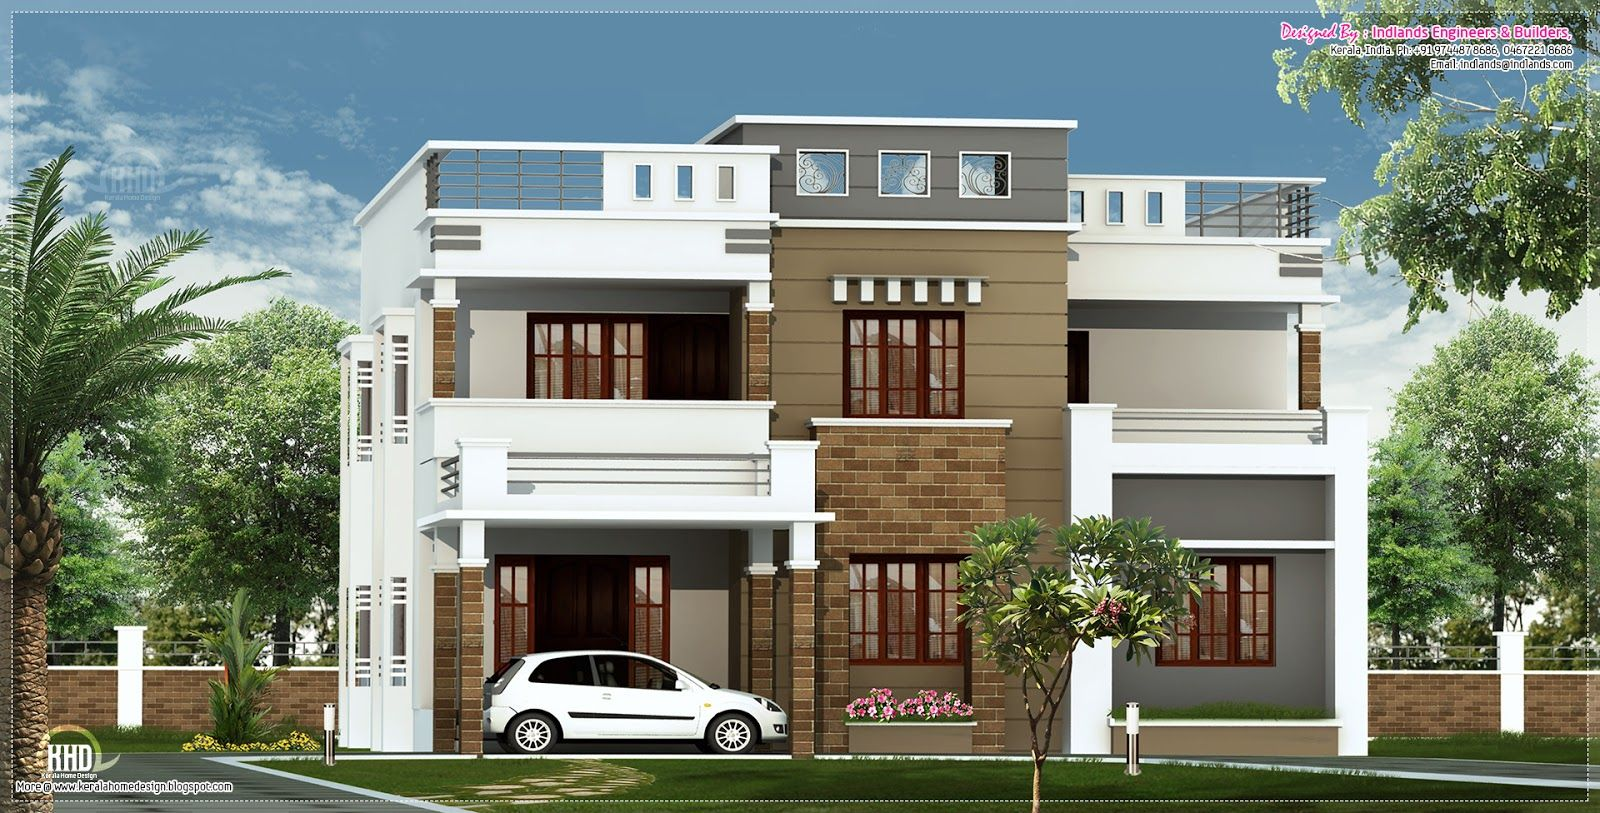 4 bedroom house with roof terrace plans google search for Terrace roof design india